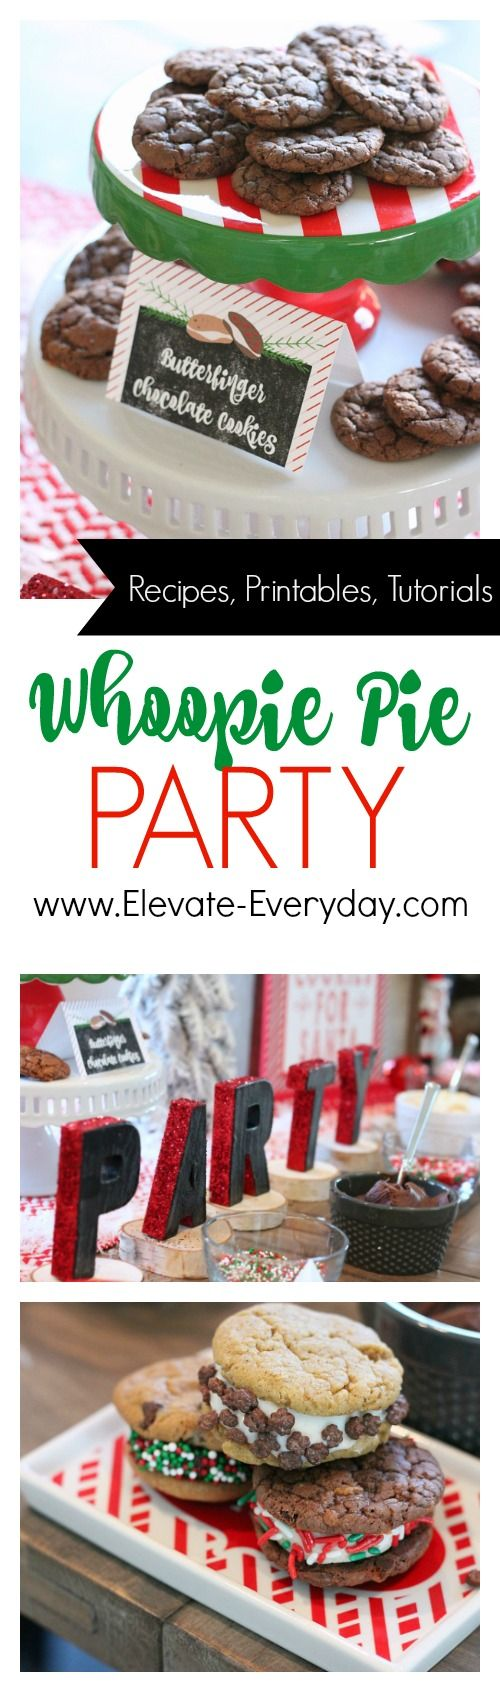 Whoopie Pie Party #BakeHolidayGoodness Ad